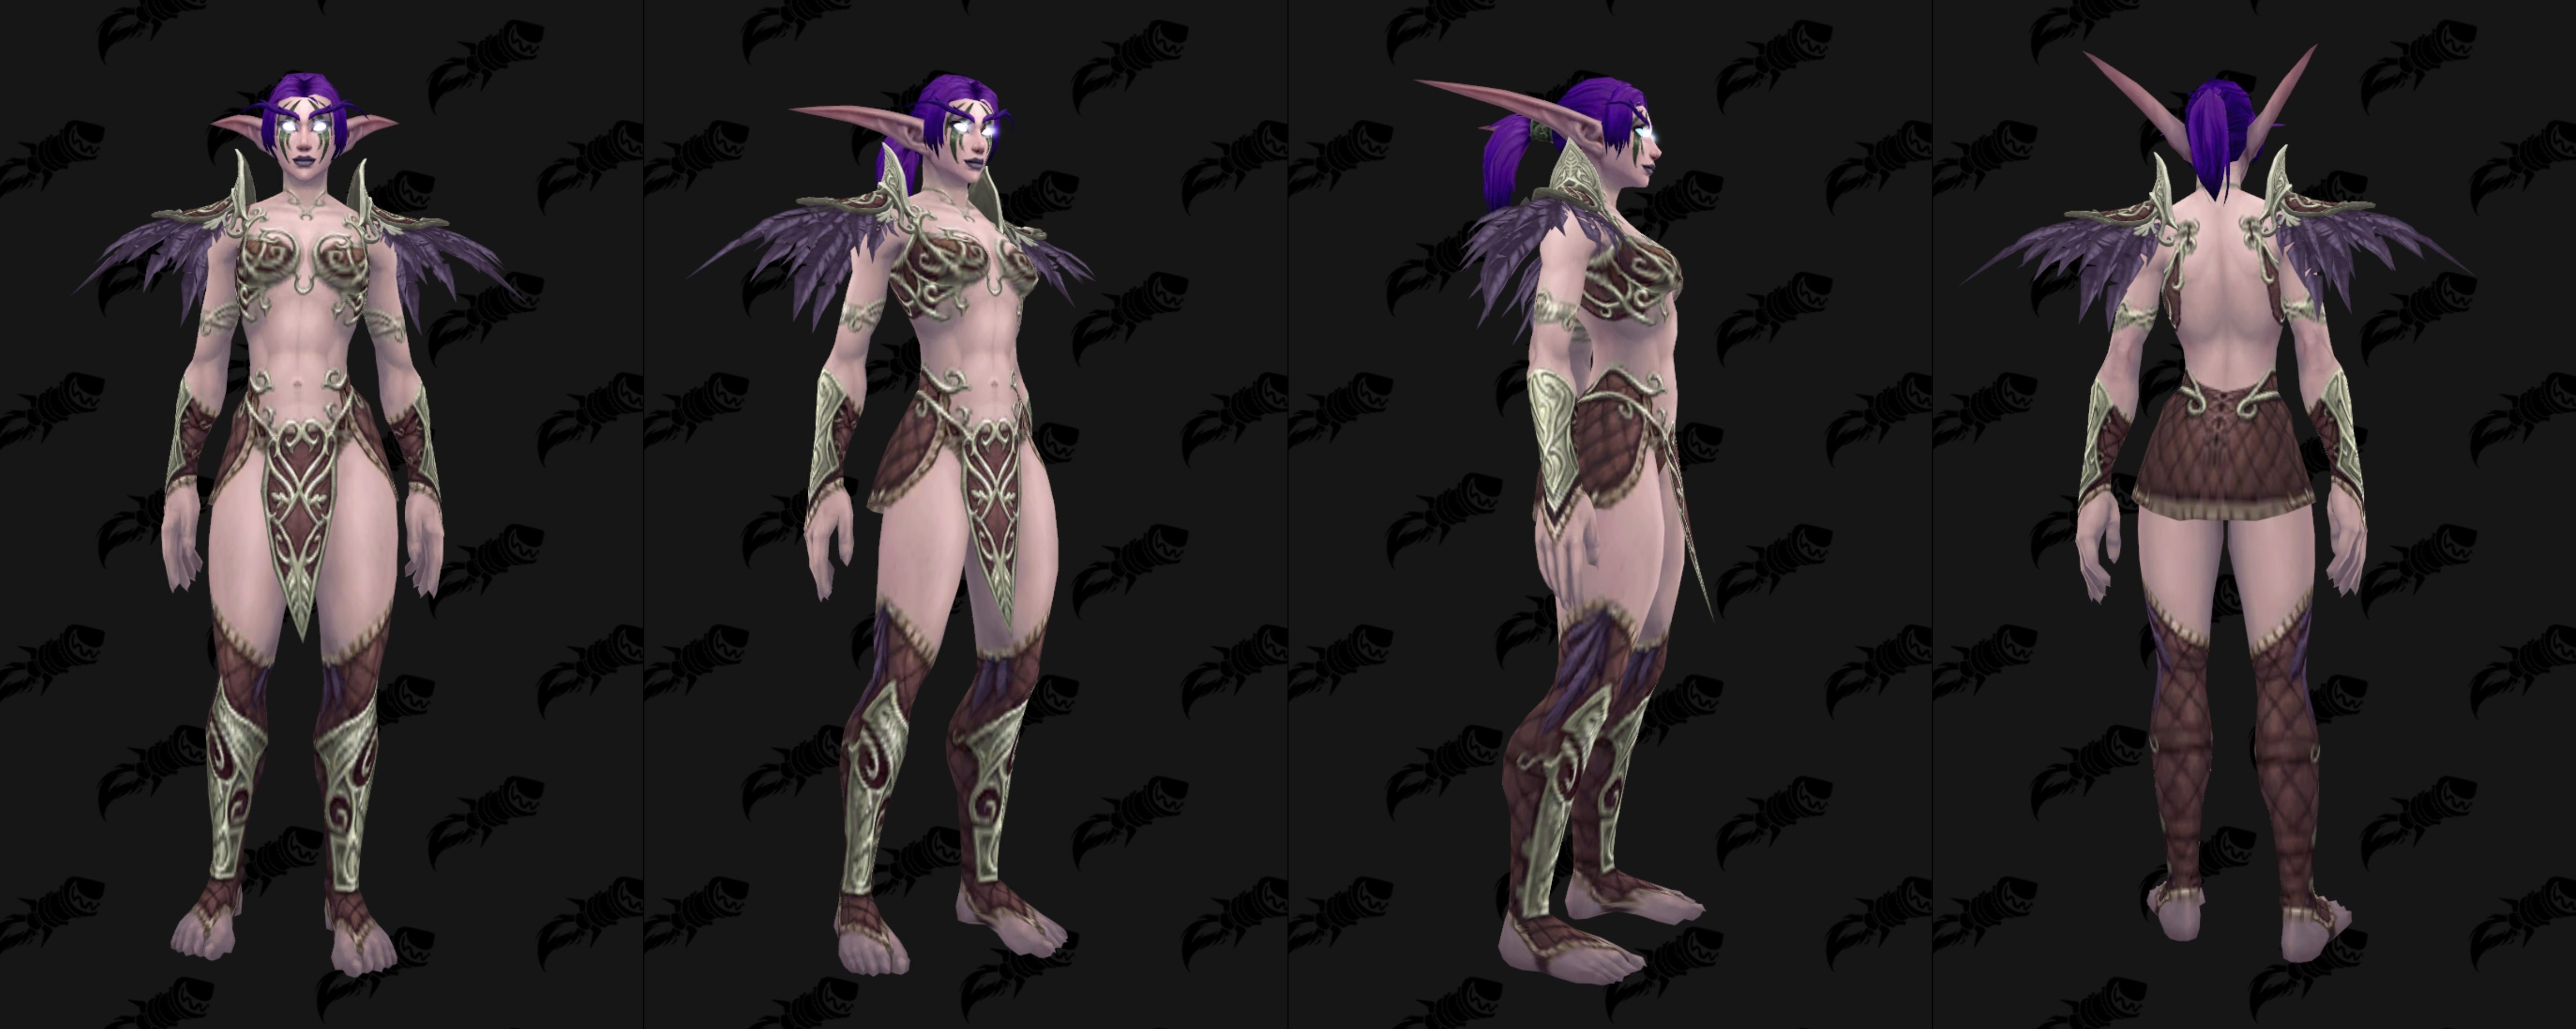 If This Is Not The Nightelf Heritage Armor Ill Be Vastly Disappointed